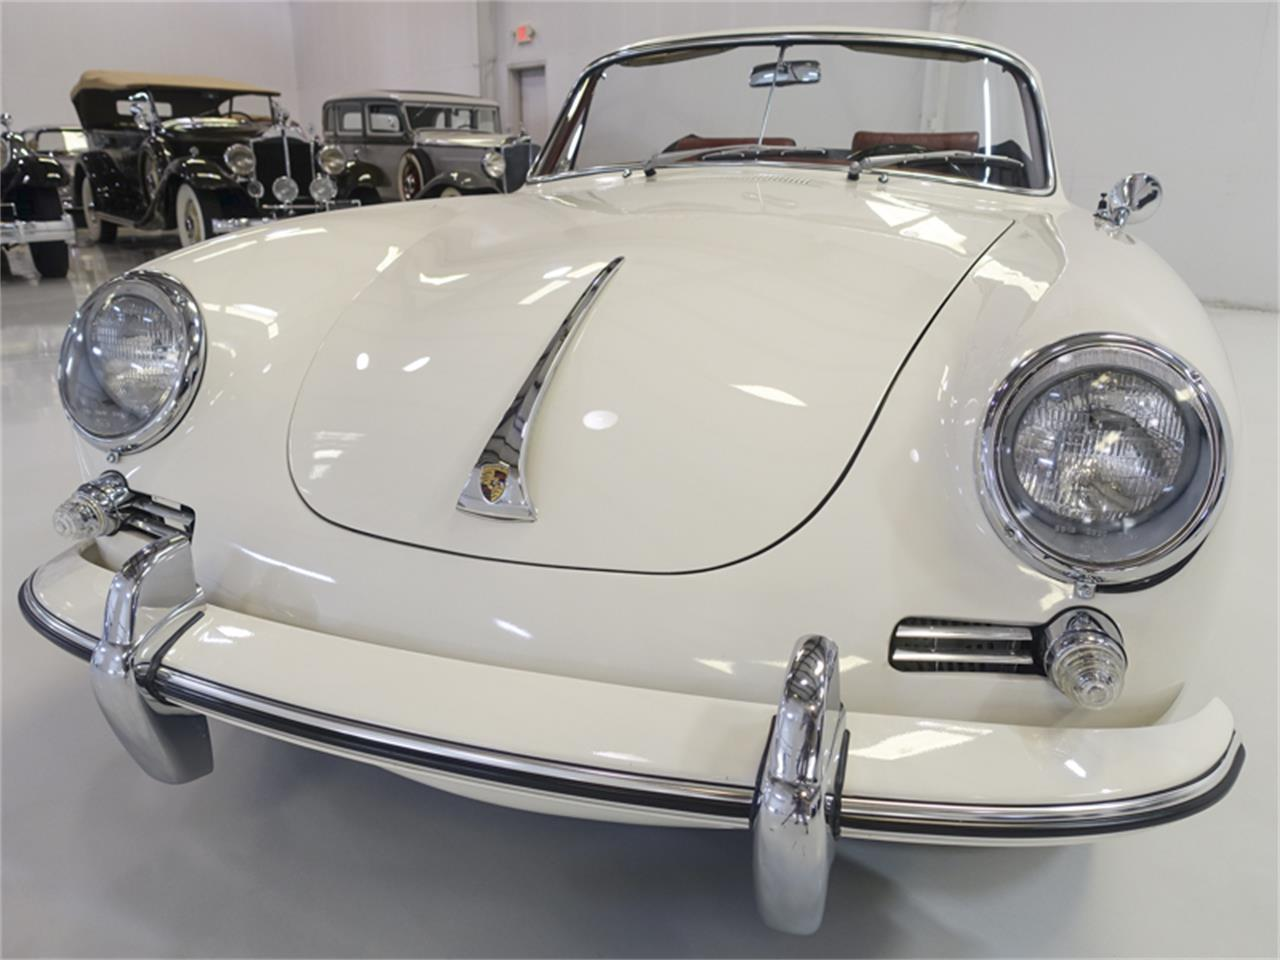 1965 Porsche 356C for sale in St. Louis, MO – photo 3